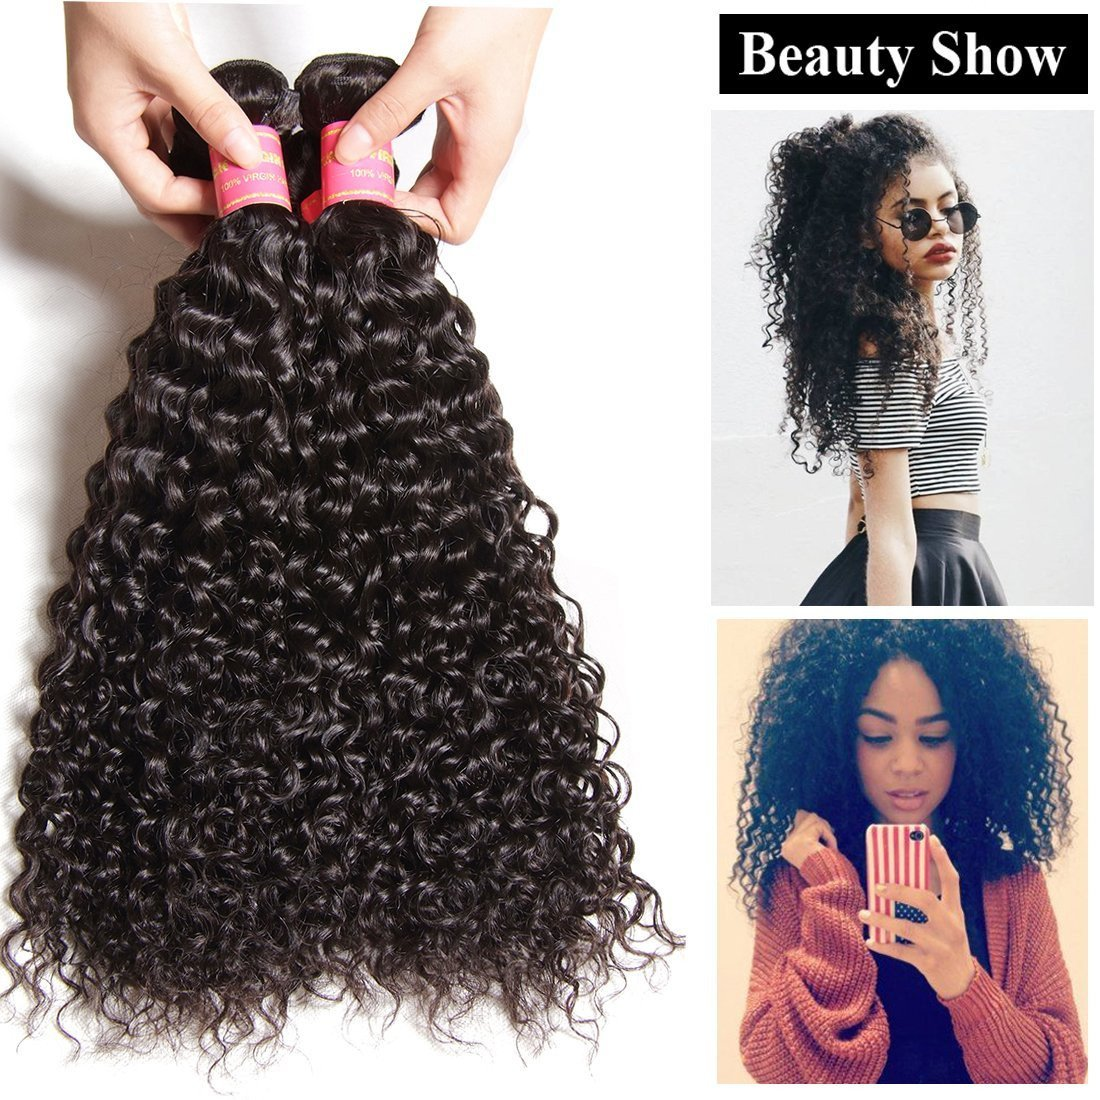 Yiroo 7a Peruvian Curly Human Hair Weave 3 Pcspack Virgin Hair Bundle